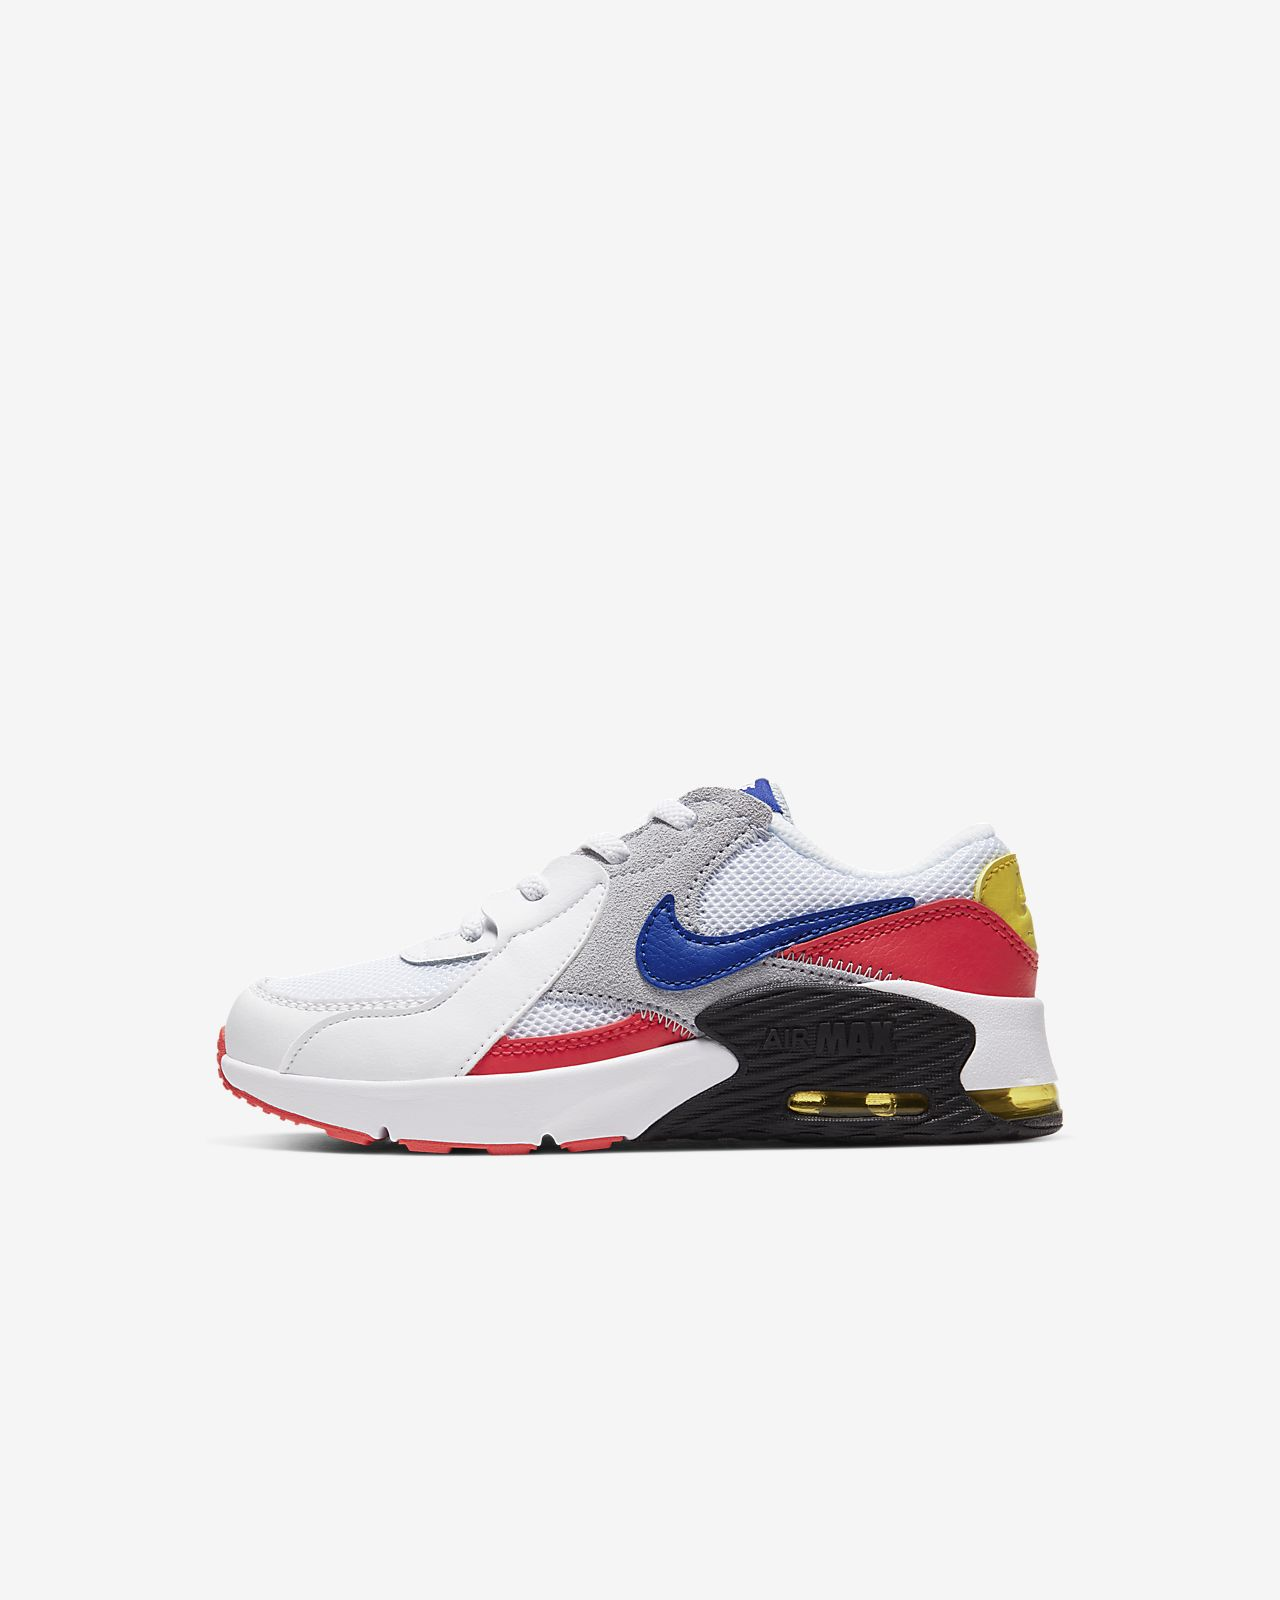 Nike Air Max Excee Kids sneakers WHITEHYPER BLUE BRIGHT